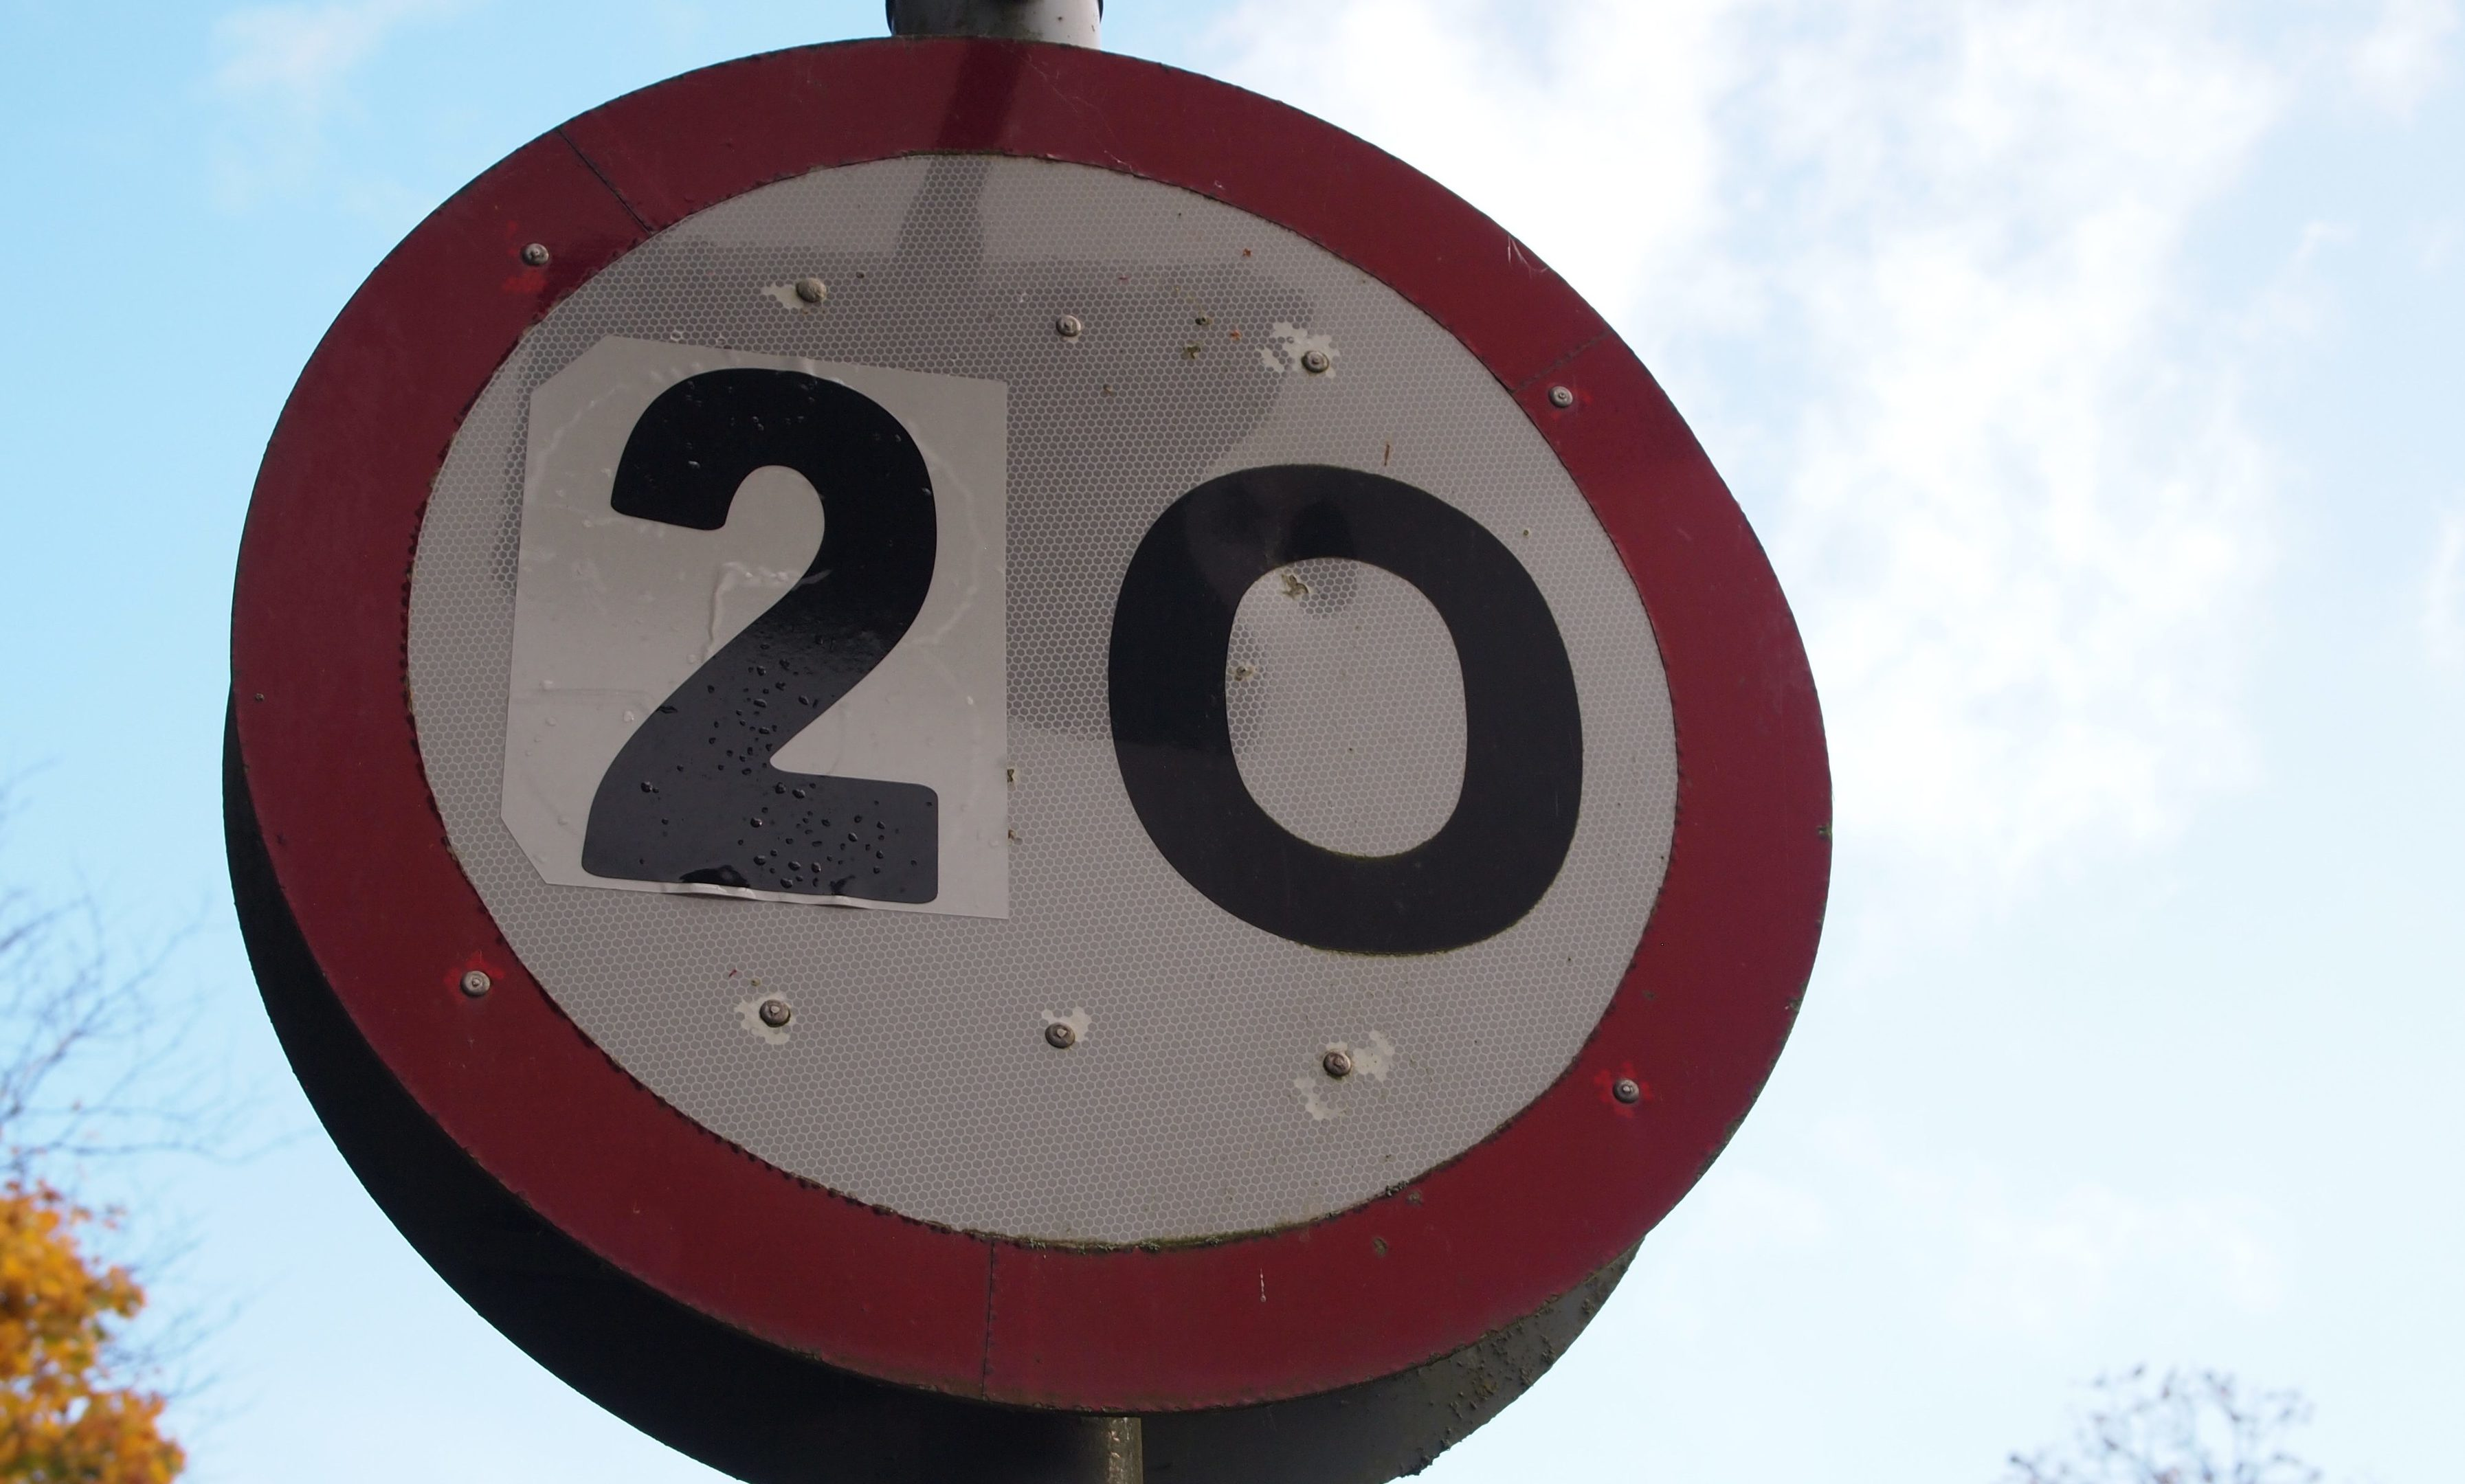 Police Scotland had to become involved after a 20mph protest at Coupar Angus saw signs changed by campaigners.